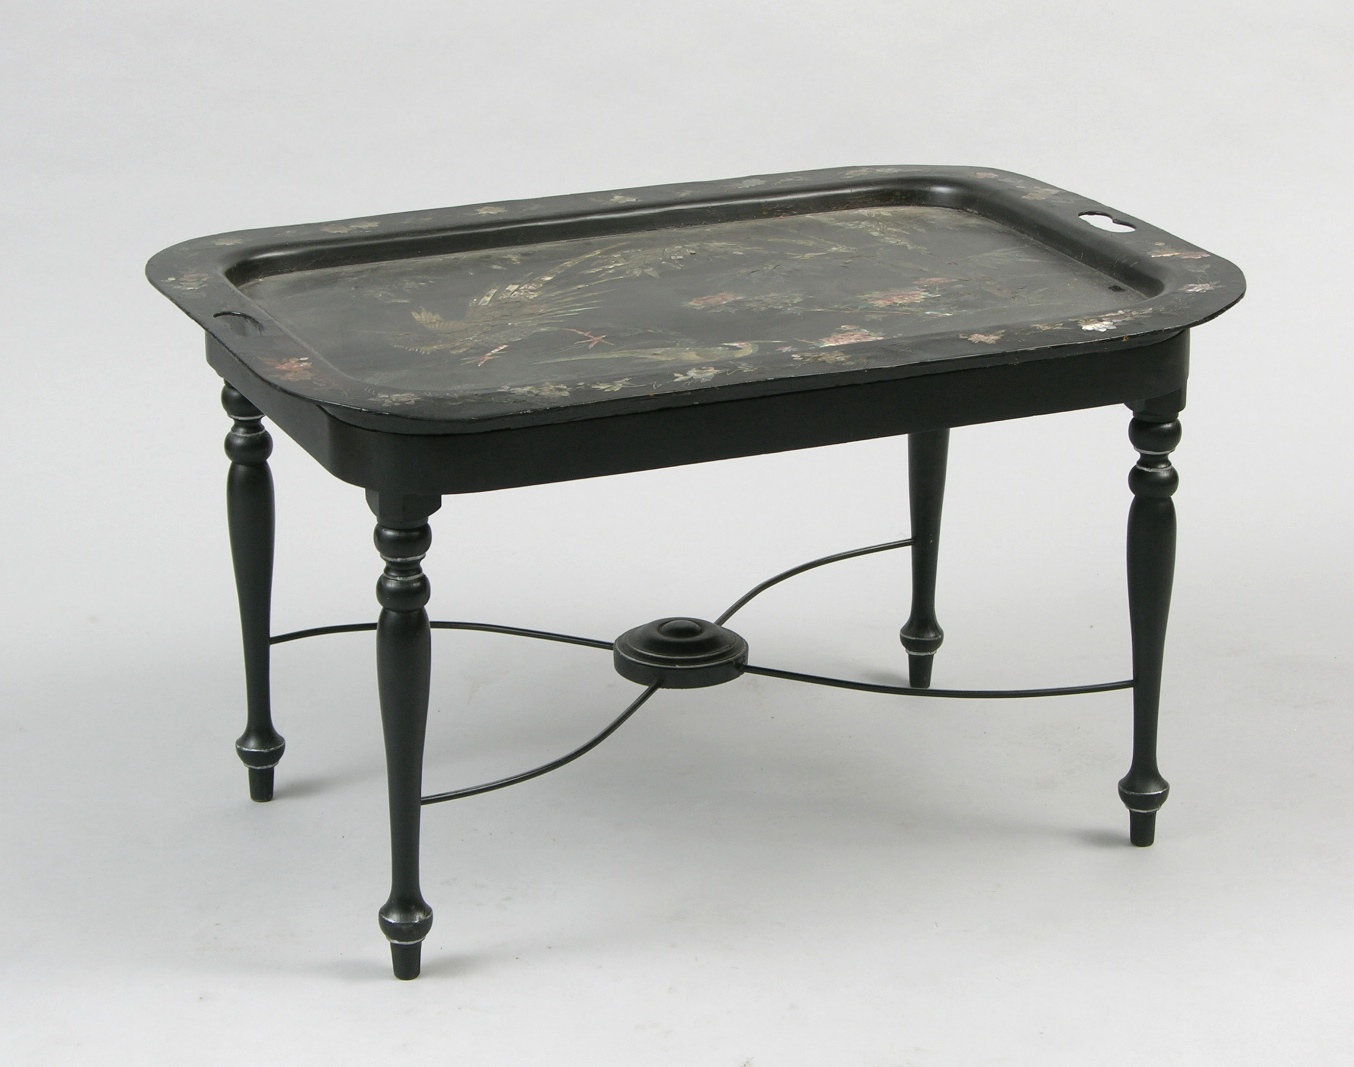 Another Antique Papier Mache Tray Table, Chinese Lacquer Top, Ca. 18th  Century